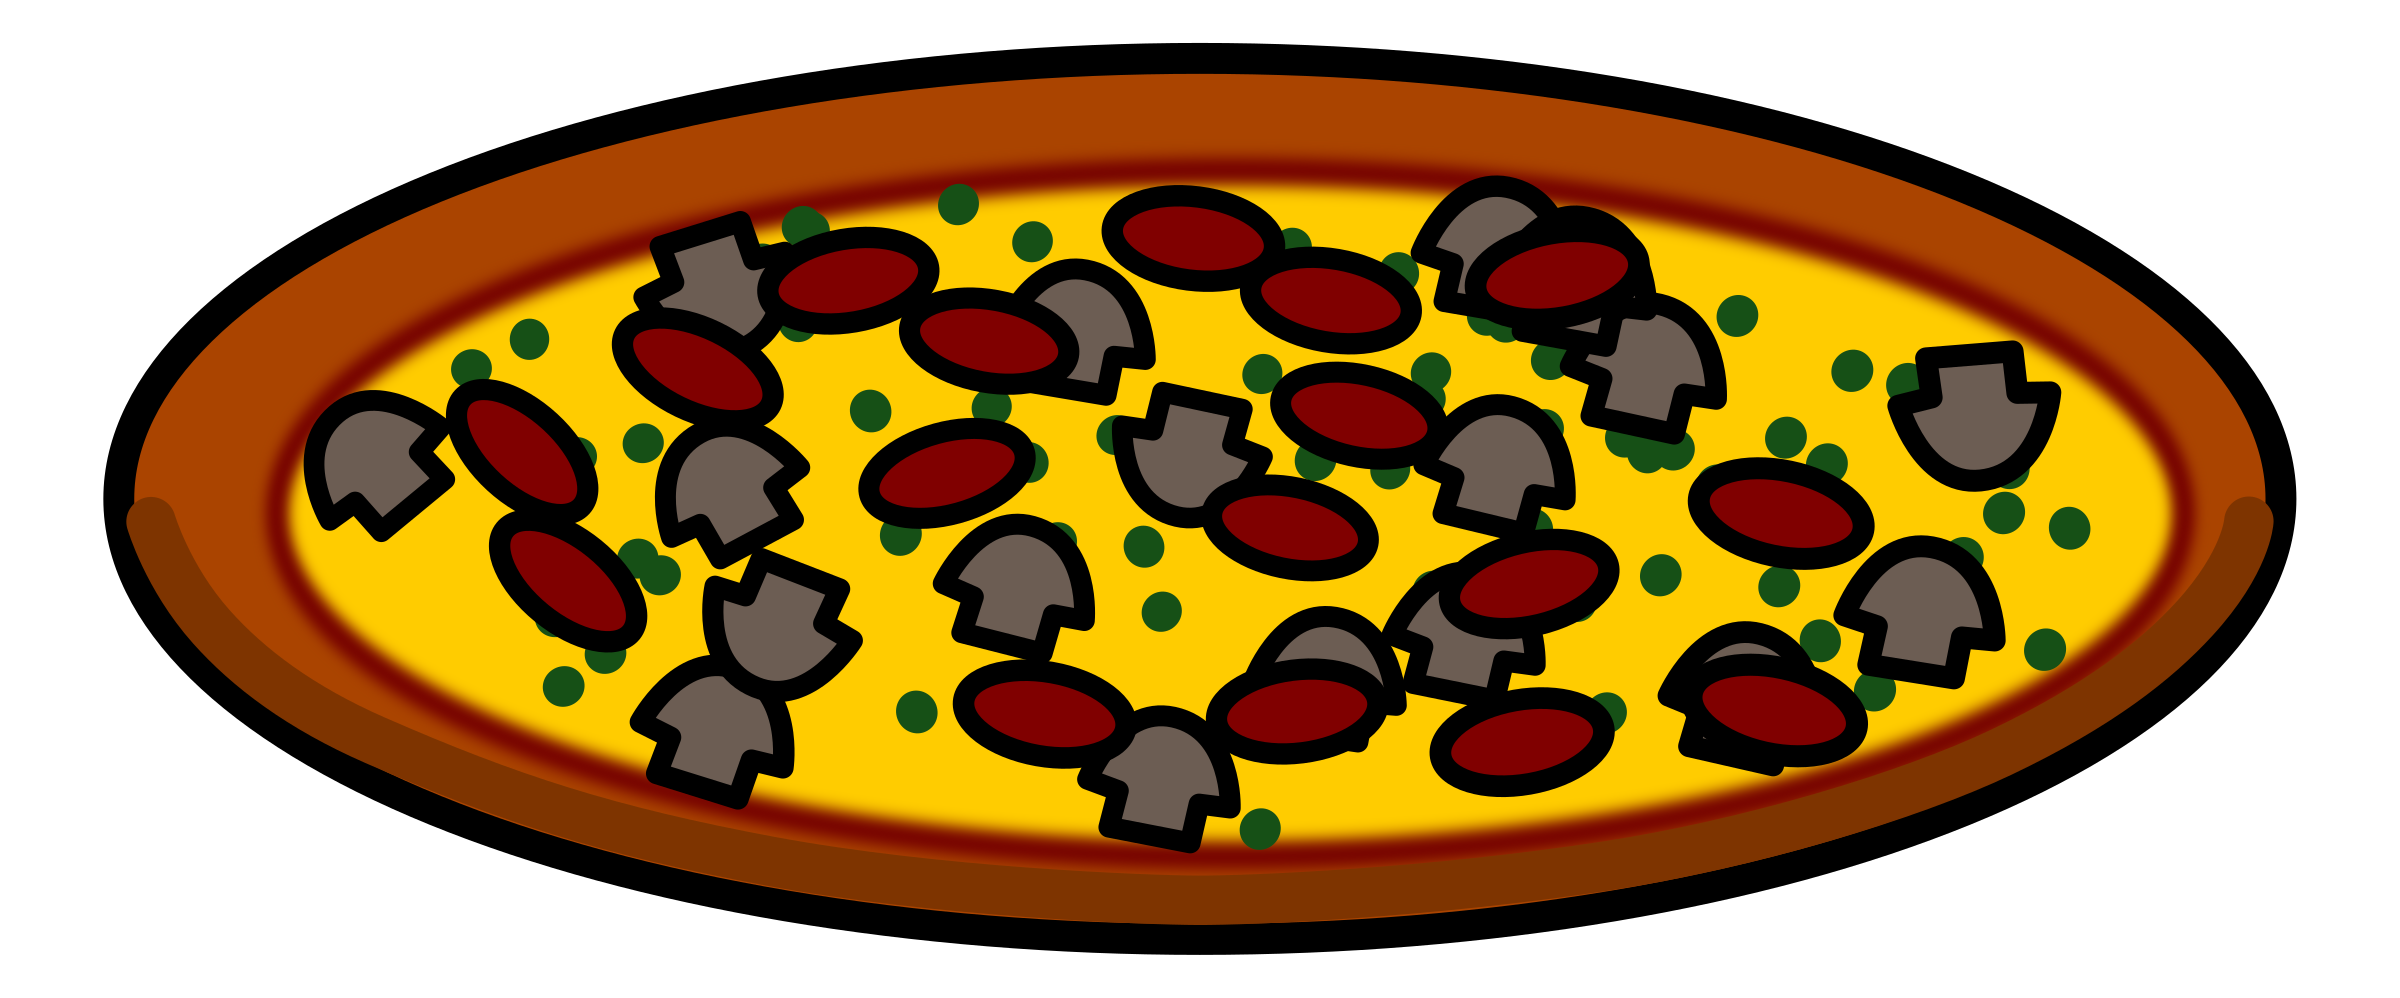 The Rejon Pizza by rejon